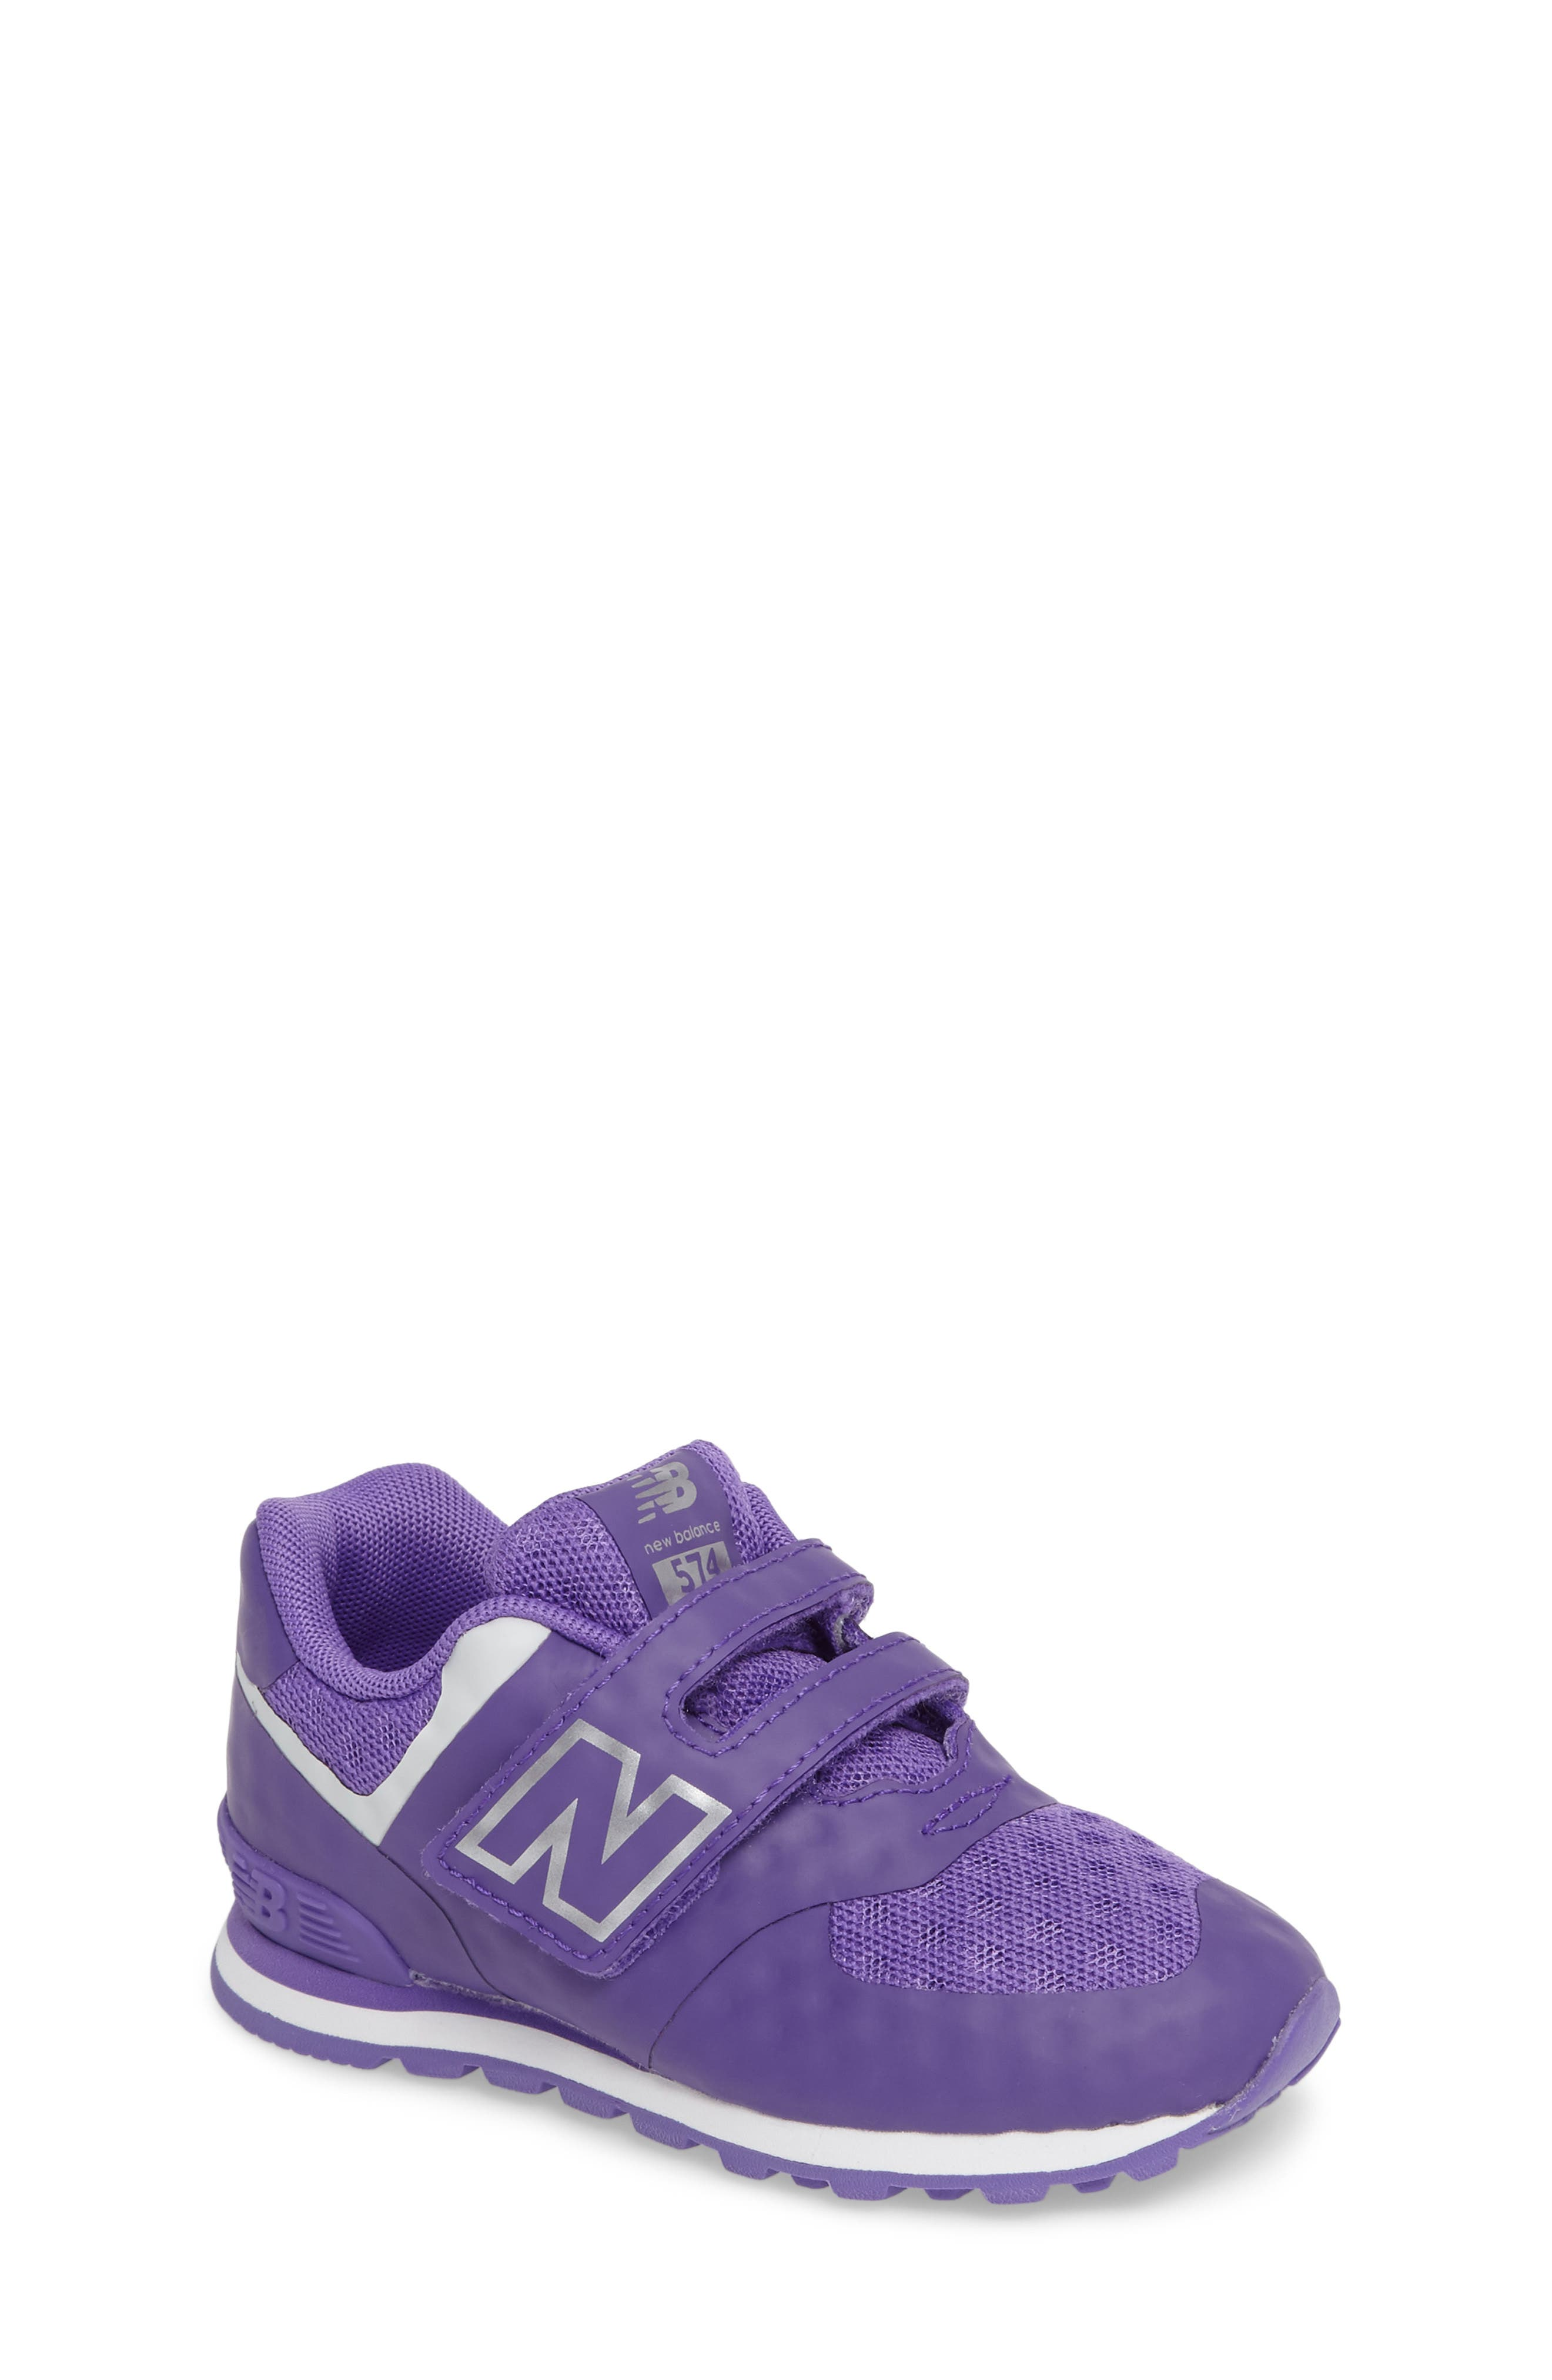 new balance 574 purple yellow